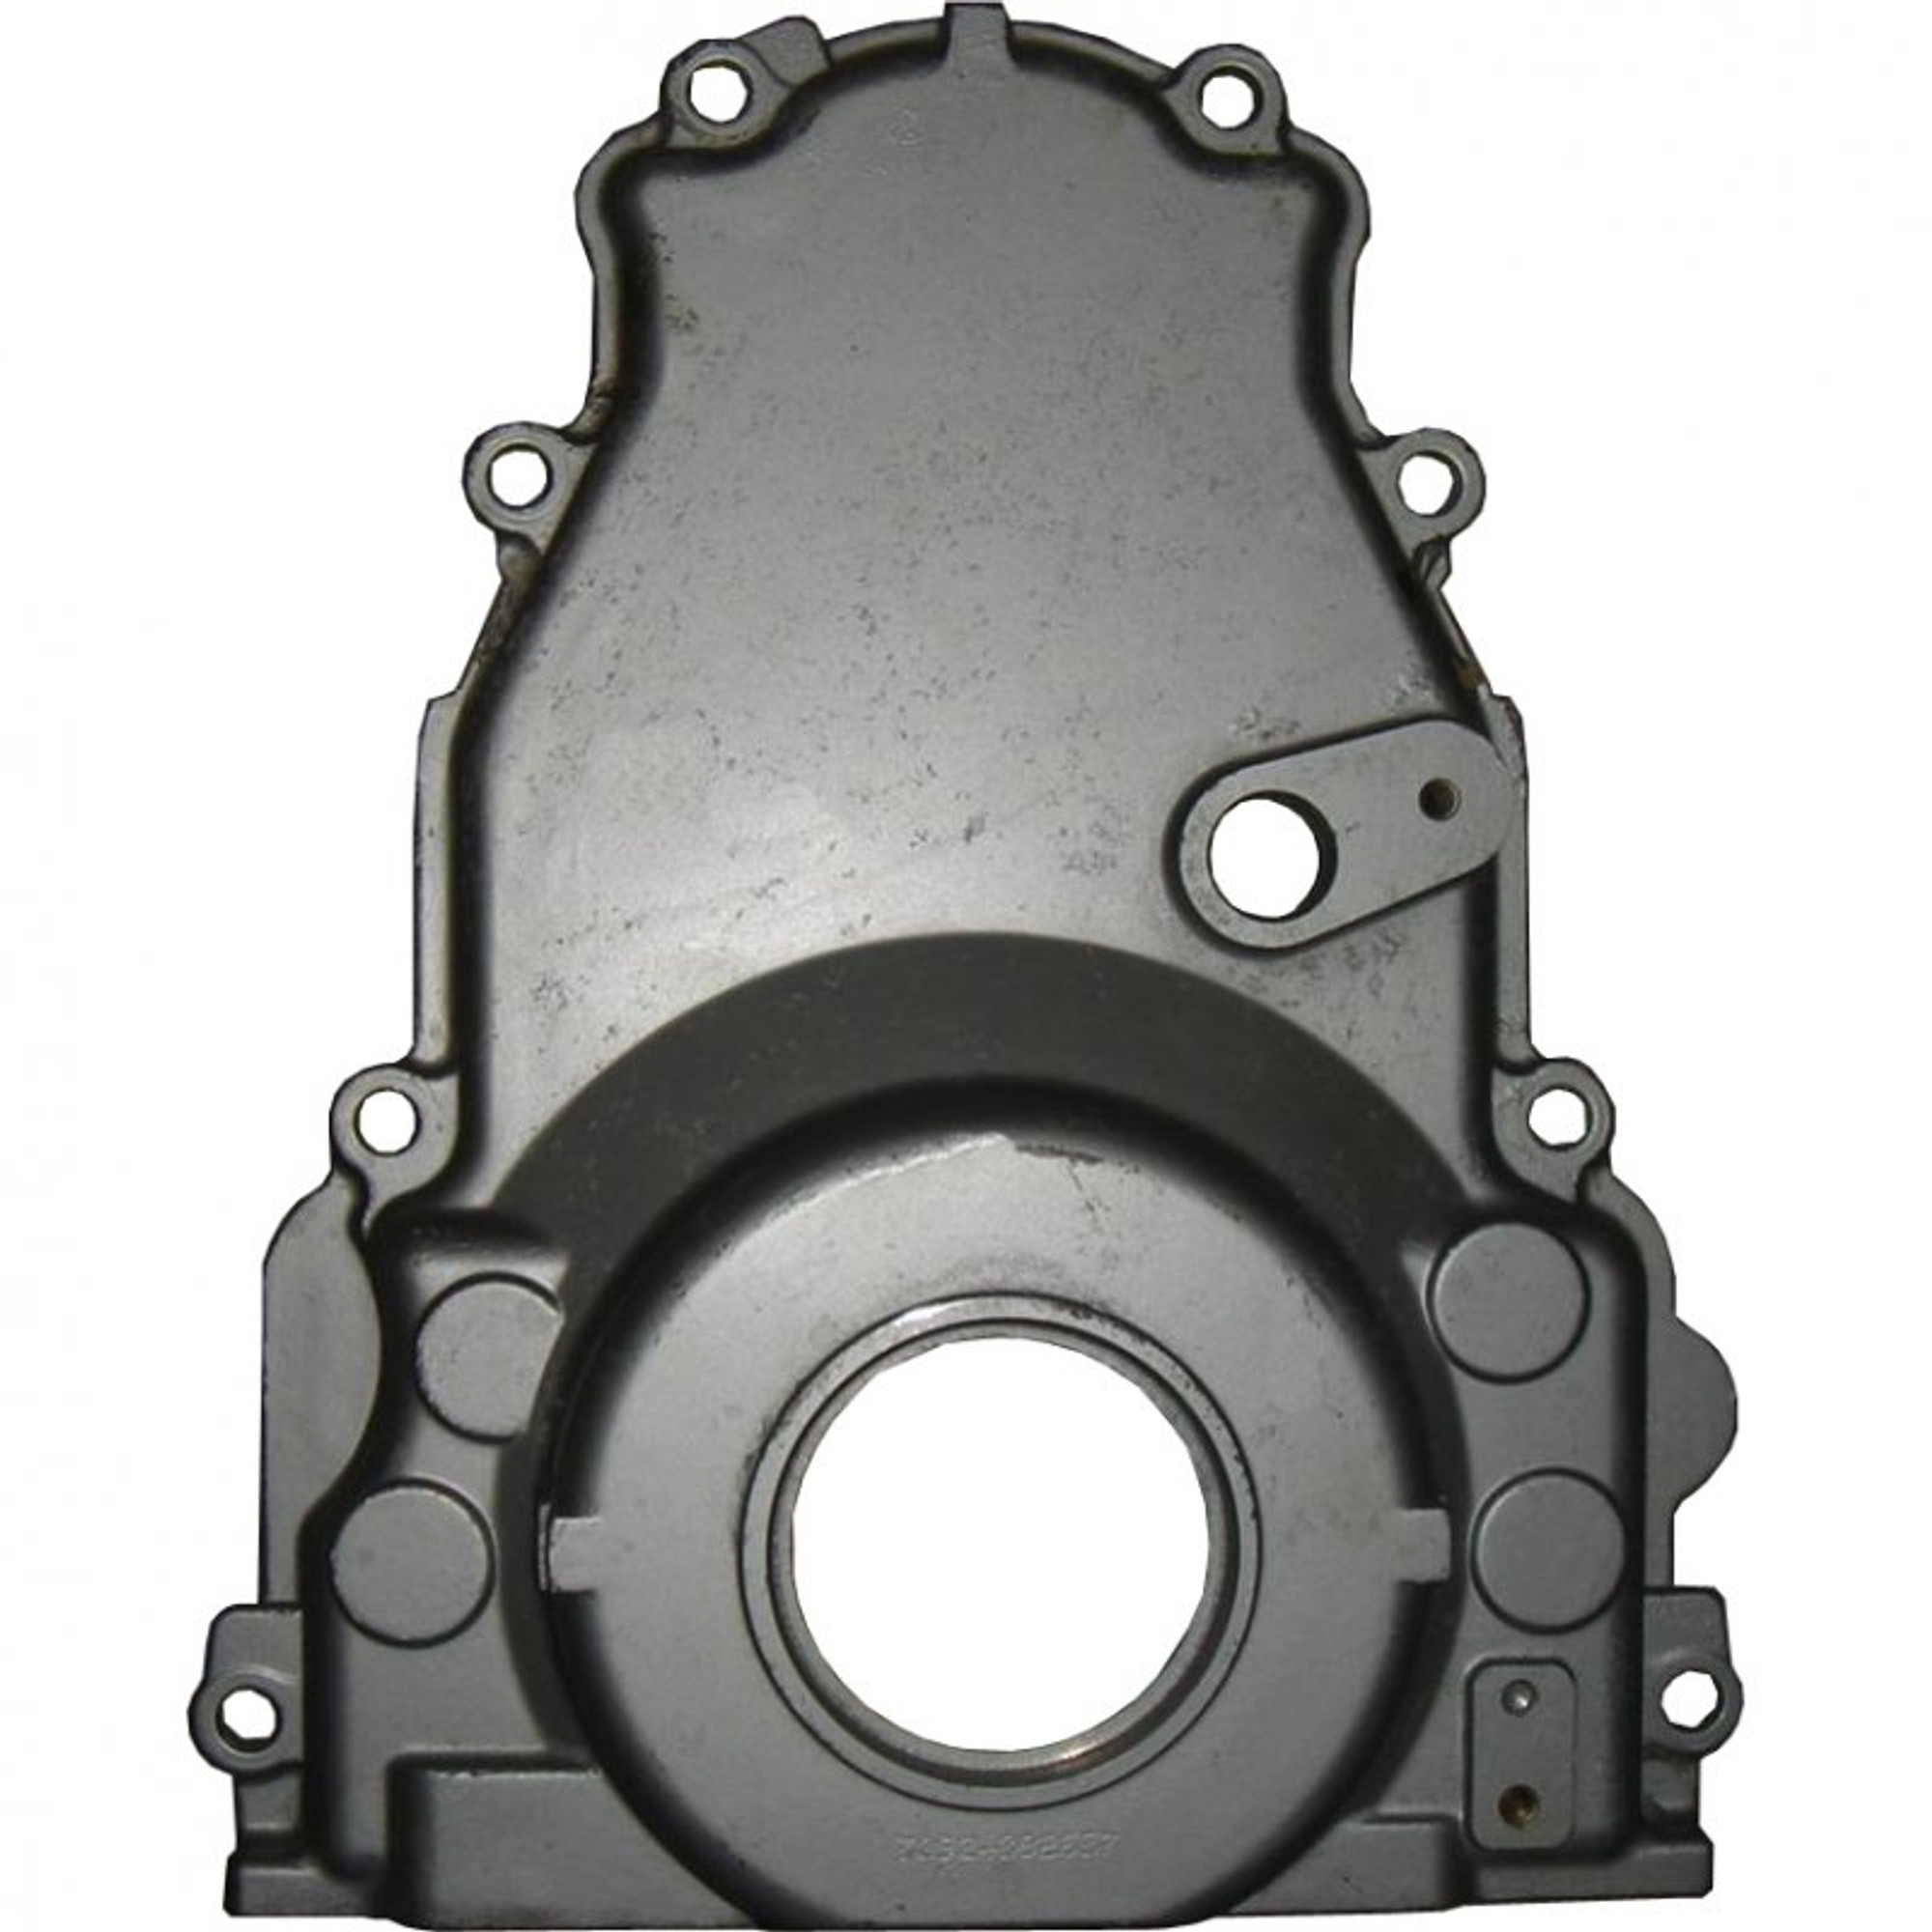 GM Front Timing Cover For LS2 And LS3 (Cover Only)